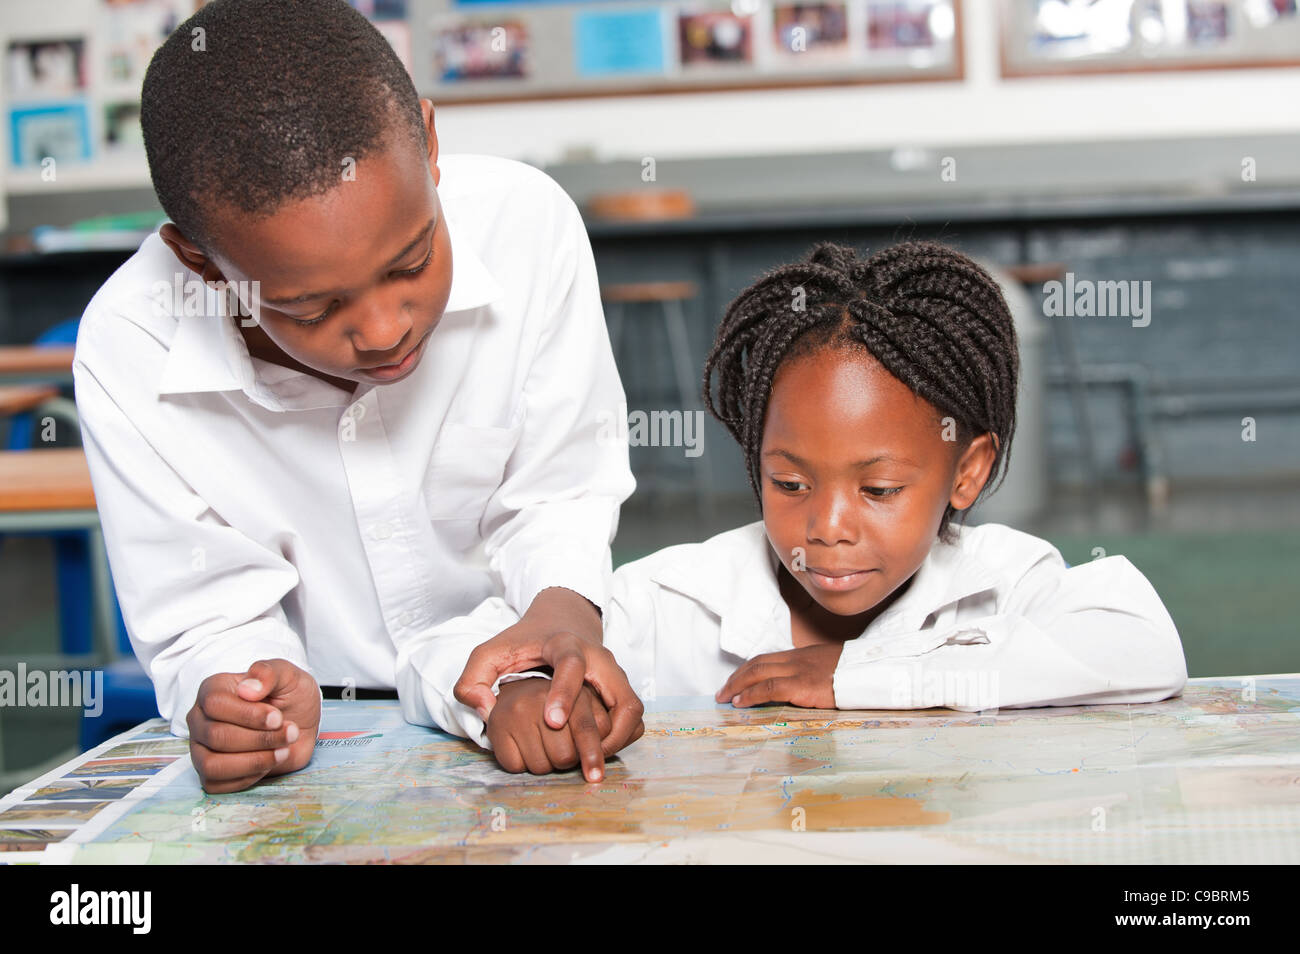 Boy and girl observing world map in classroom, Johannesburg, Gauteng Province, South Africa - Stock Image